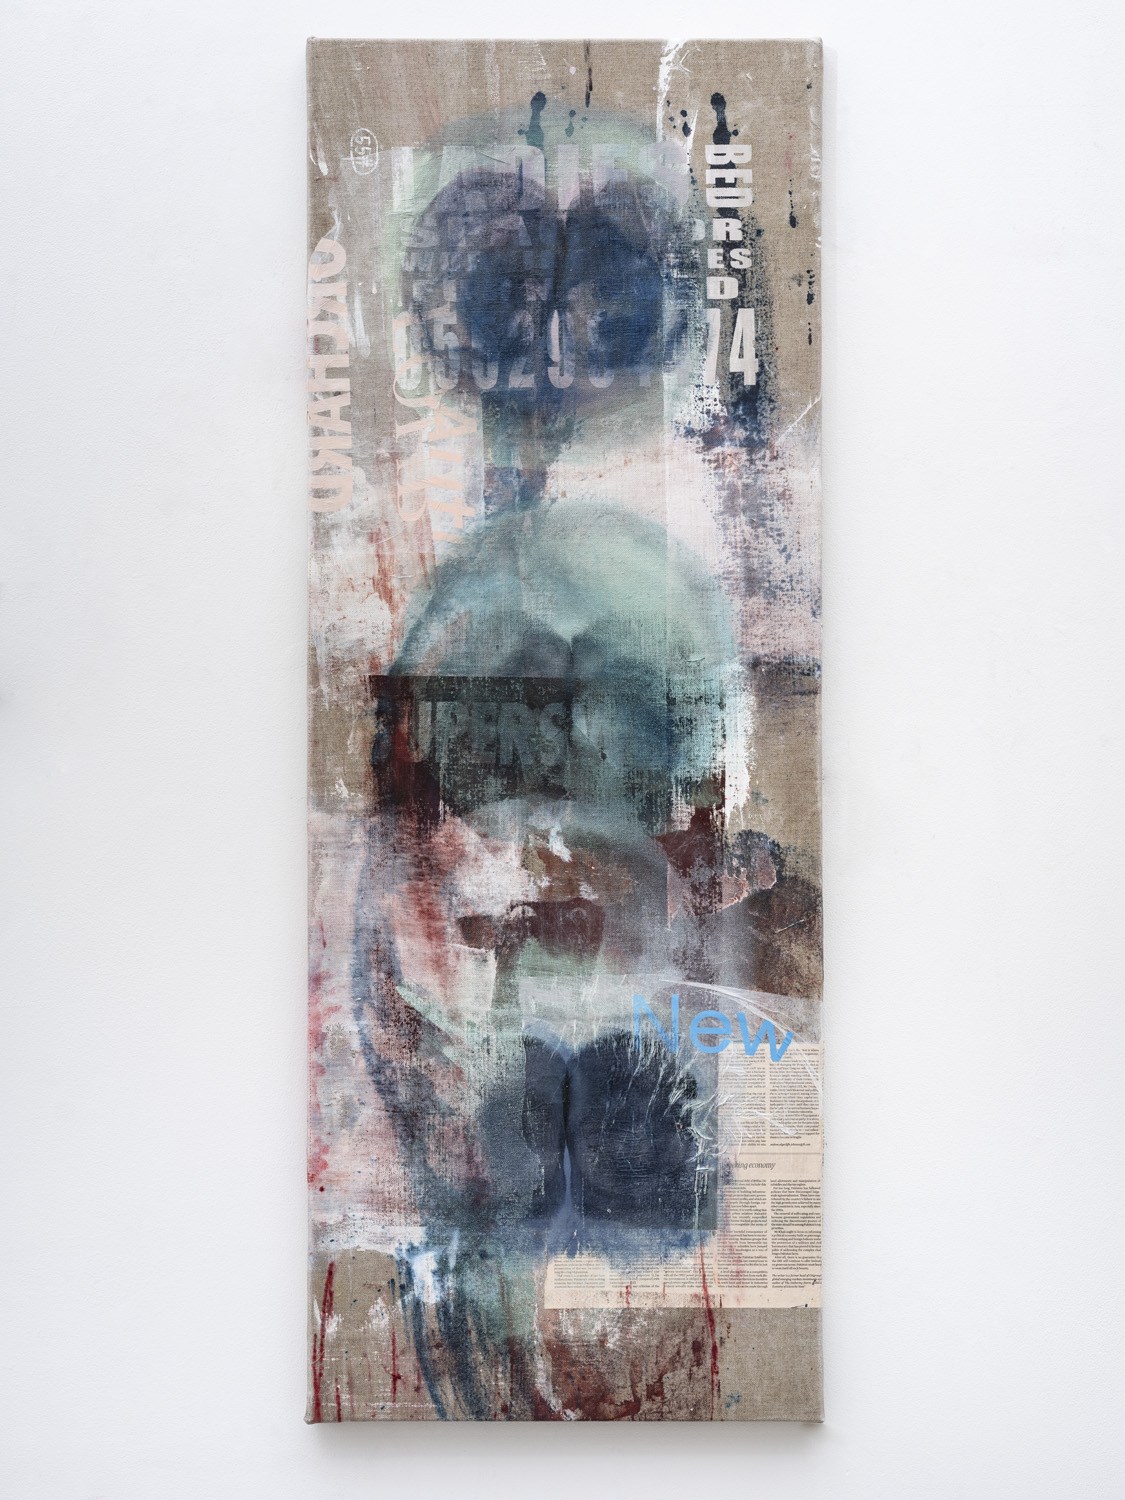 MANDY EL-SAYEGH Proofs (bed division), 2021 Oil on silkscreened linen and collaged elements 55.12 x 20.47 inches 140 x 52 cm Courtesy the artist and Lehmann Maupin, New York, Hong Kong, Seoul, and London